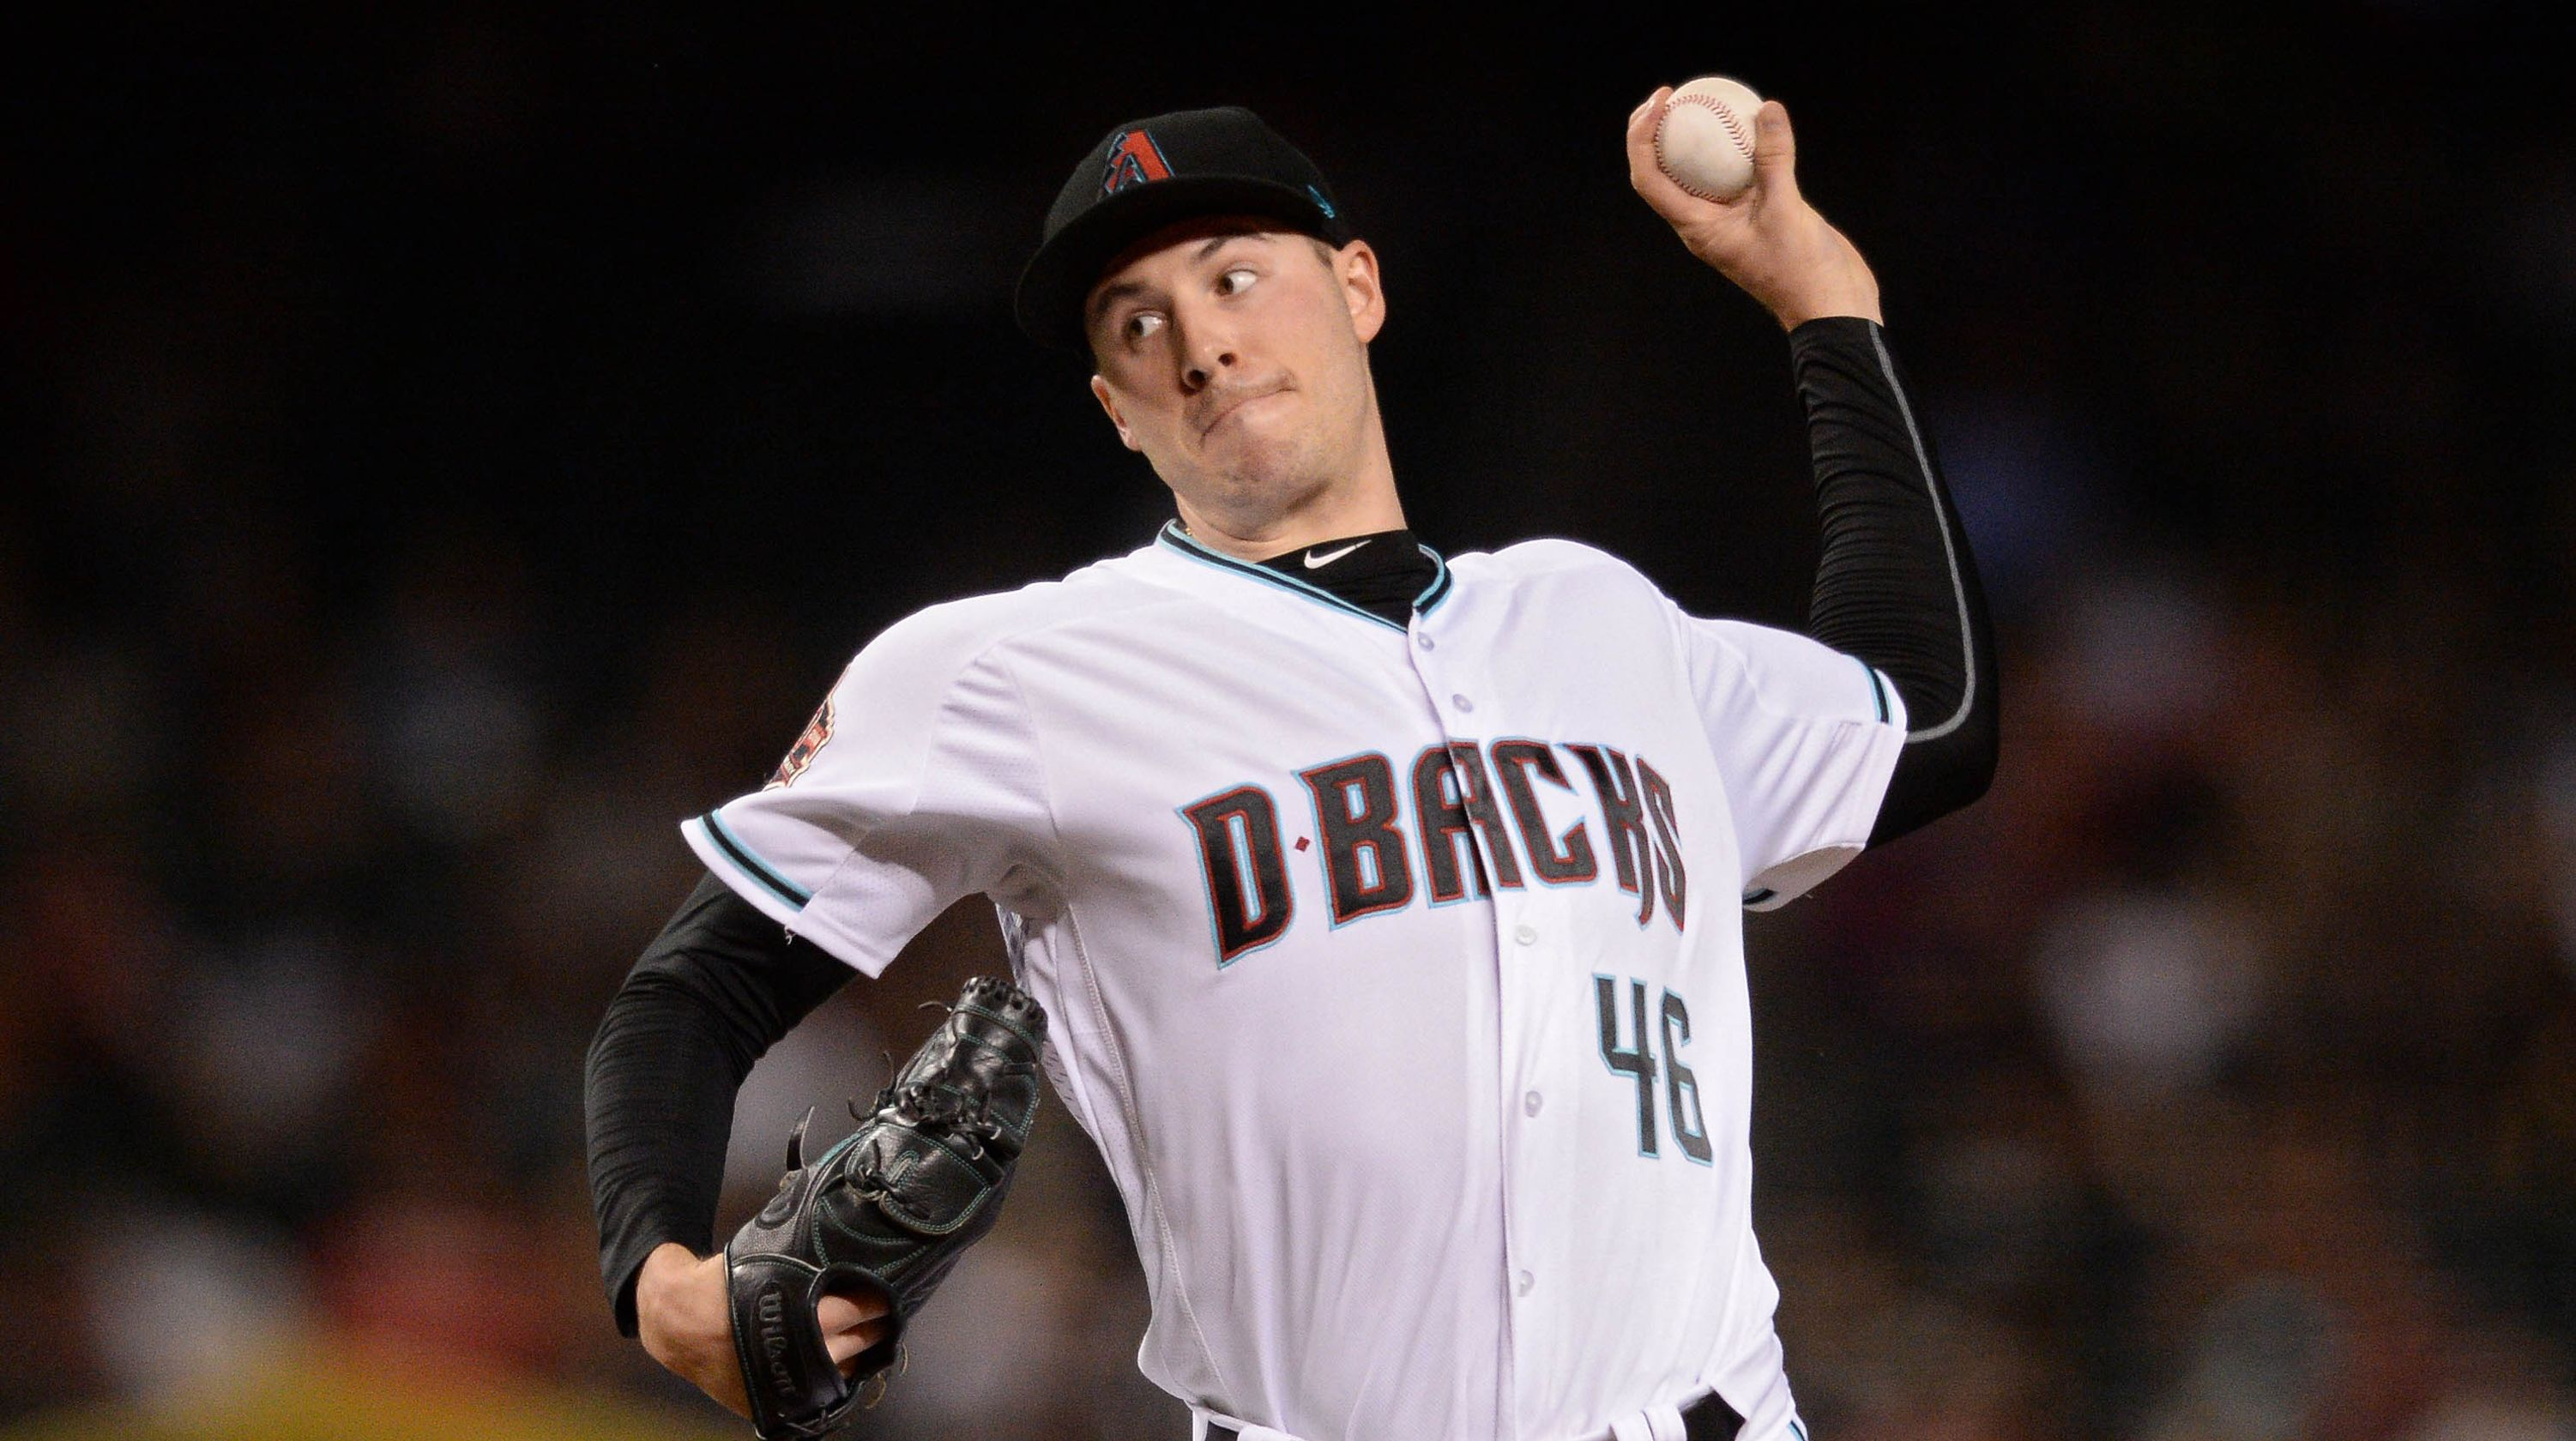 Patrick Corbin agrees to six-year deal with Washington Nationals